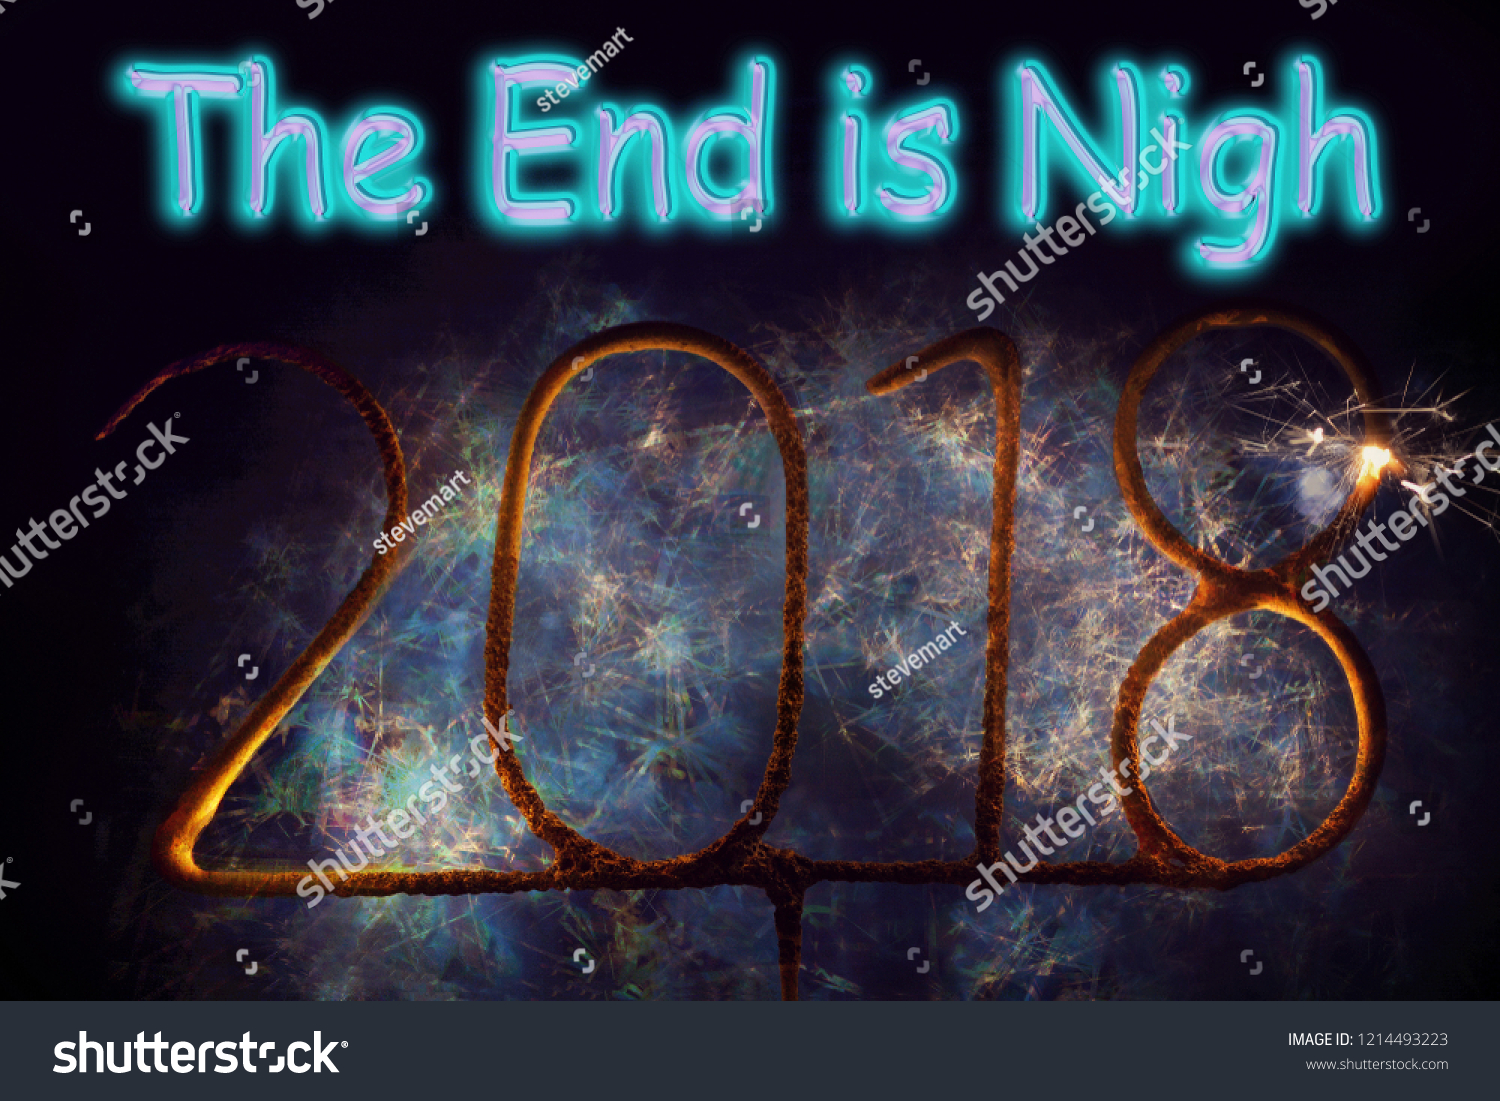 stock-photo-year-end-and-new-year-burned